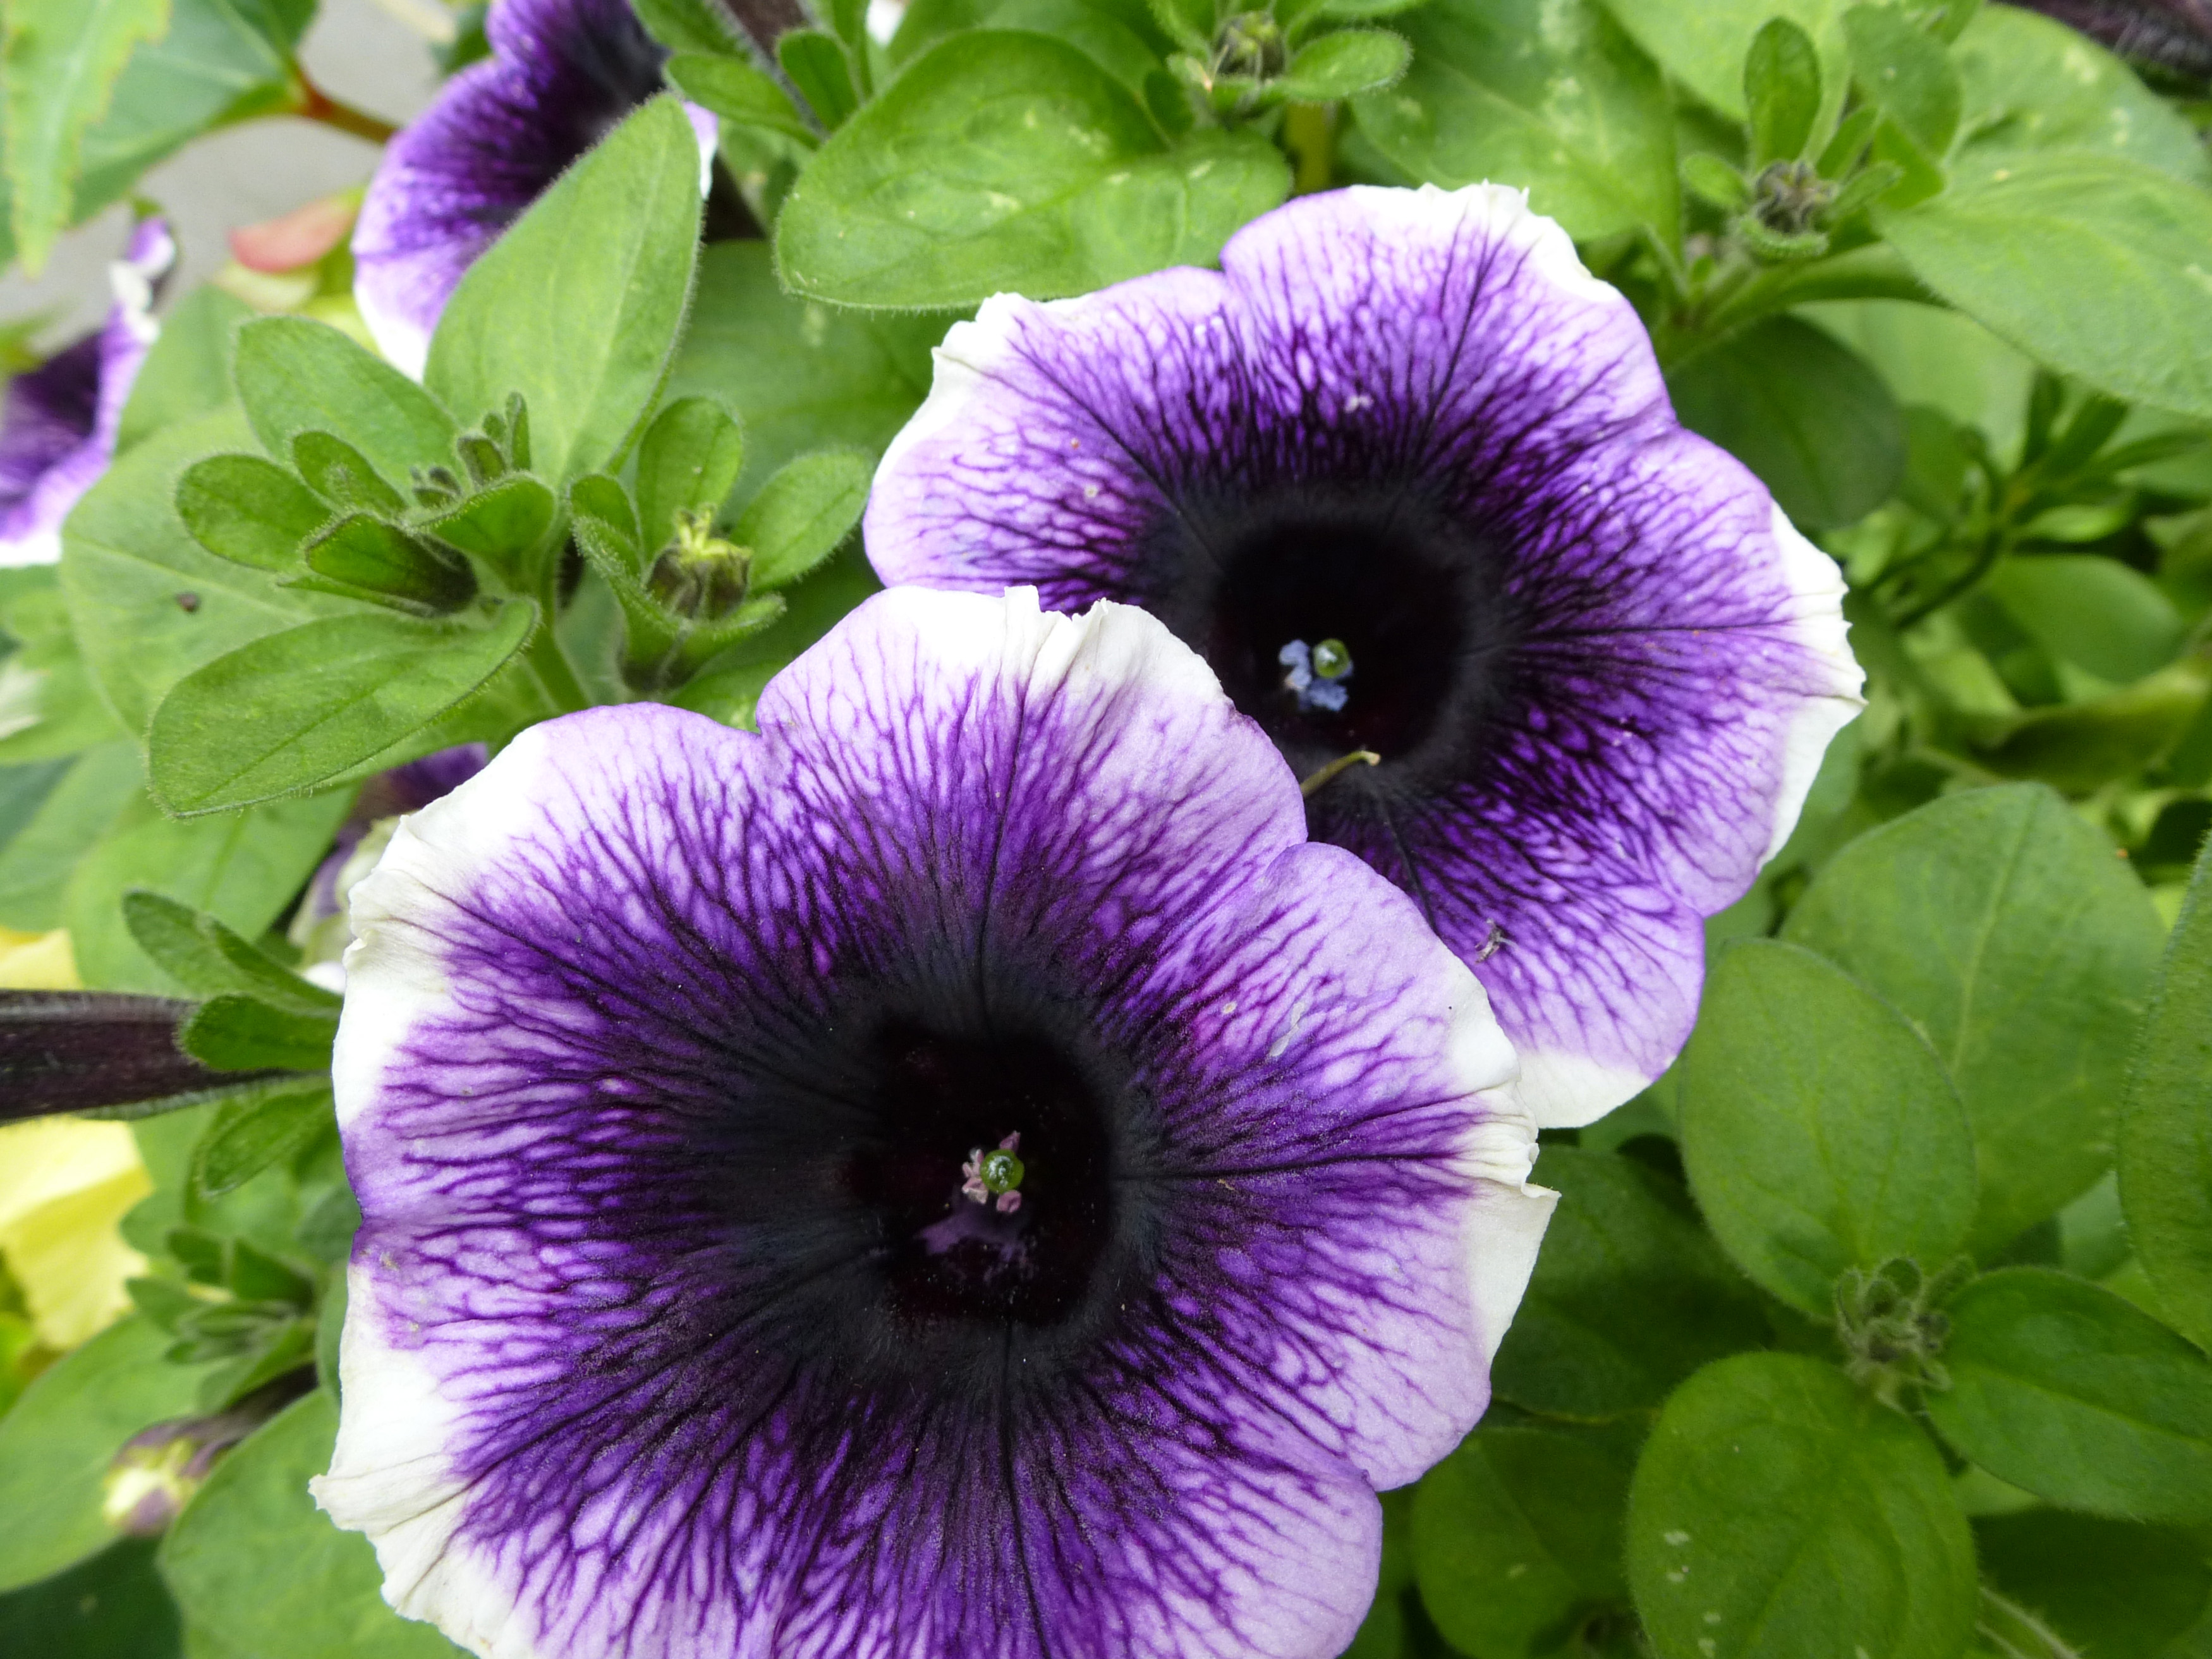 Free Image Of Variegated Purple And White Petunia